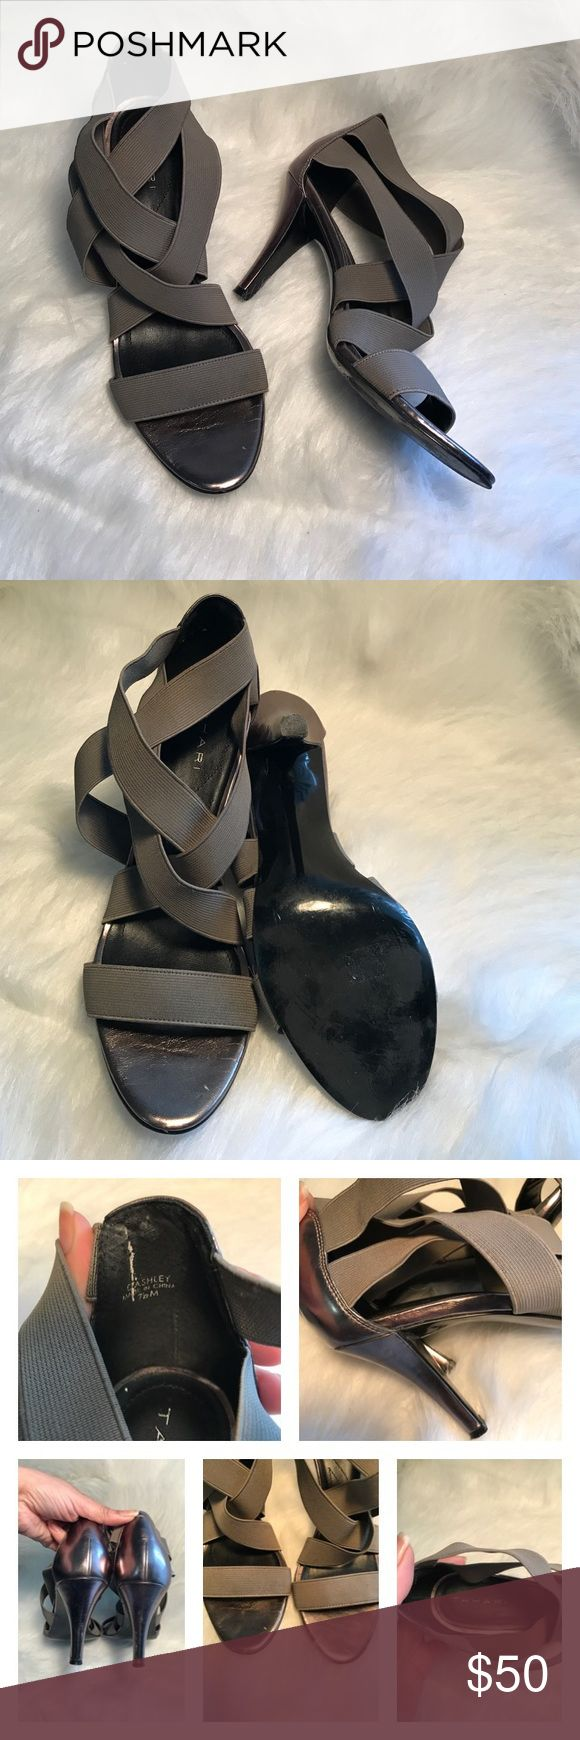 """💜 TAHARI DASHLEY PEWTER SANDALS Gorgeous pewter metallic sandals with cloth strapping! Great with skinny jeans or that little black dress. Great pre-owned condition, with some scuffs. See pic#3/ 3"""" heel. Tahari Shoes Heels"""